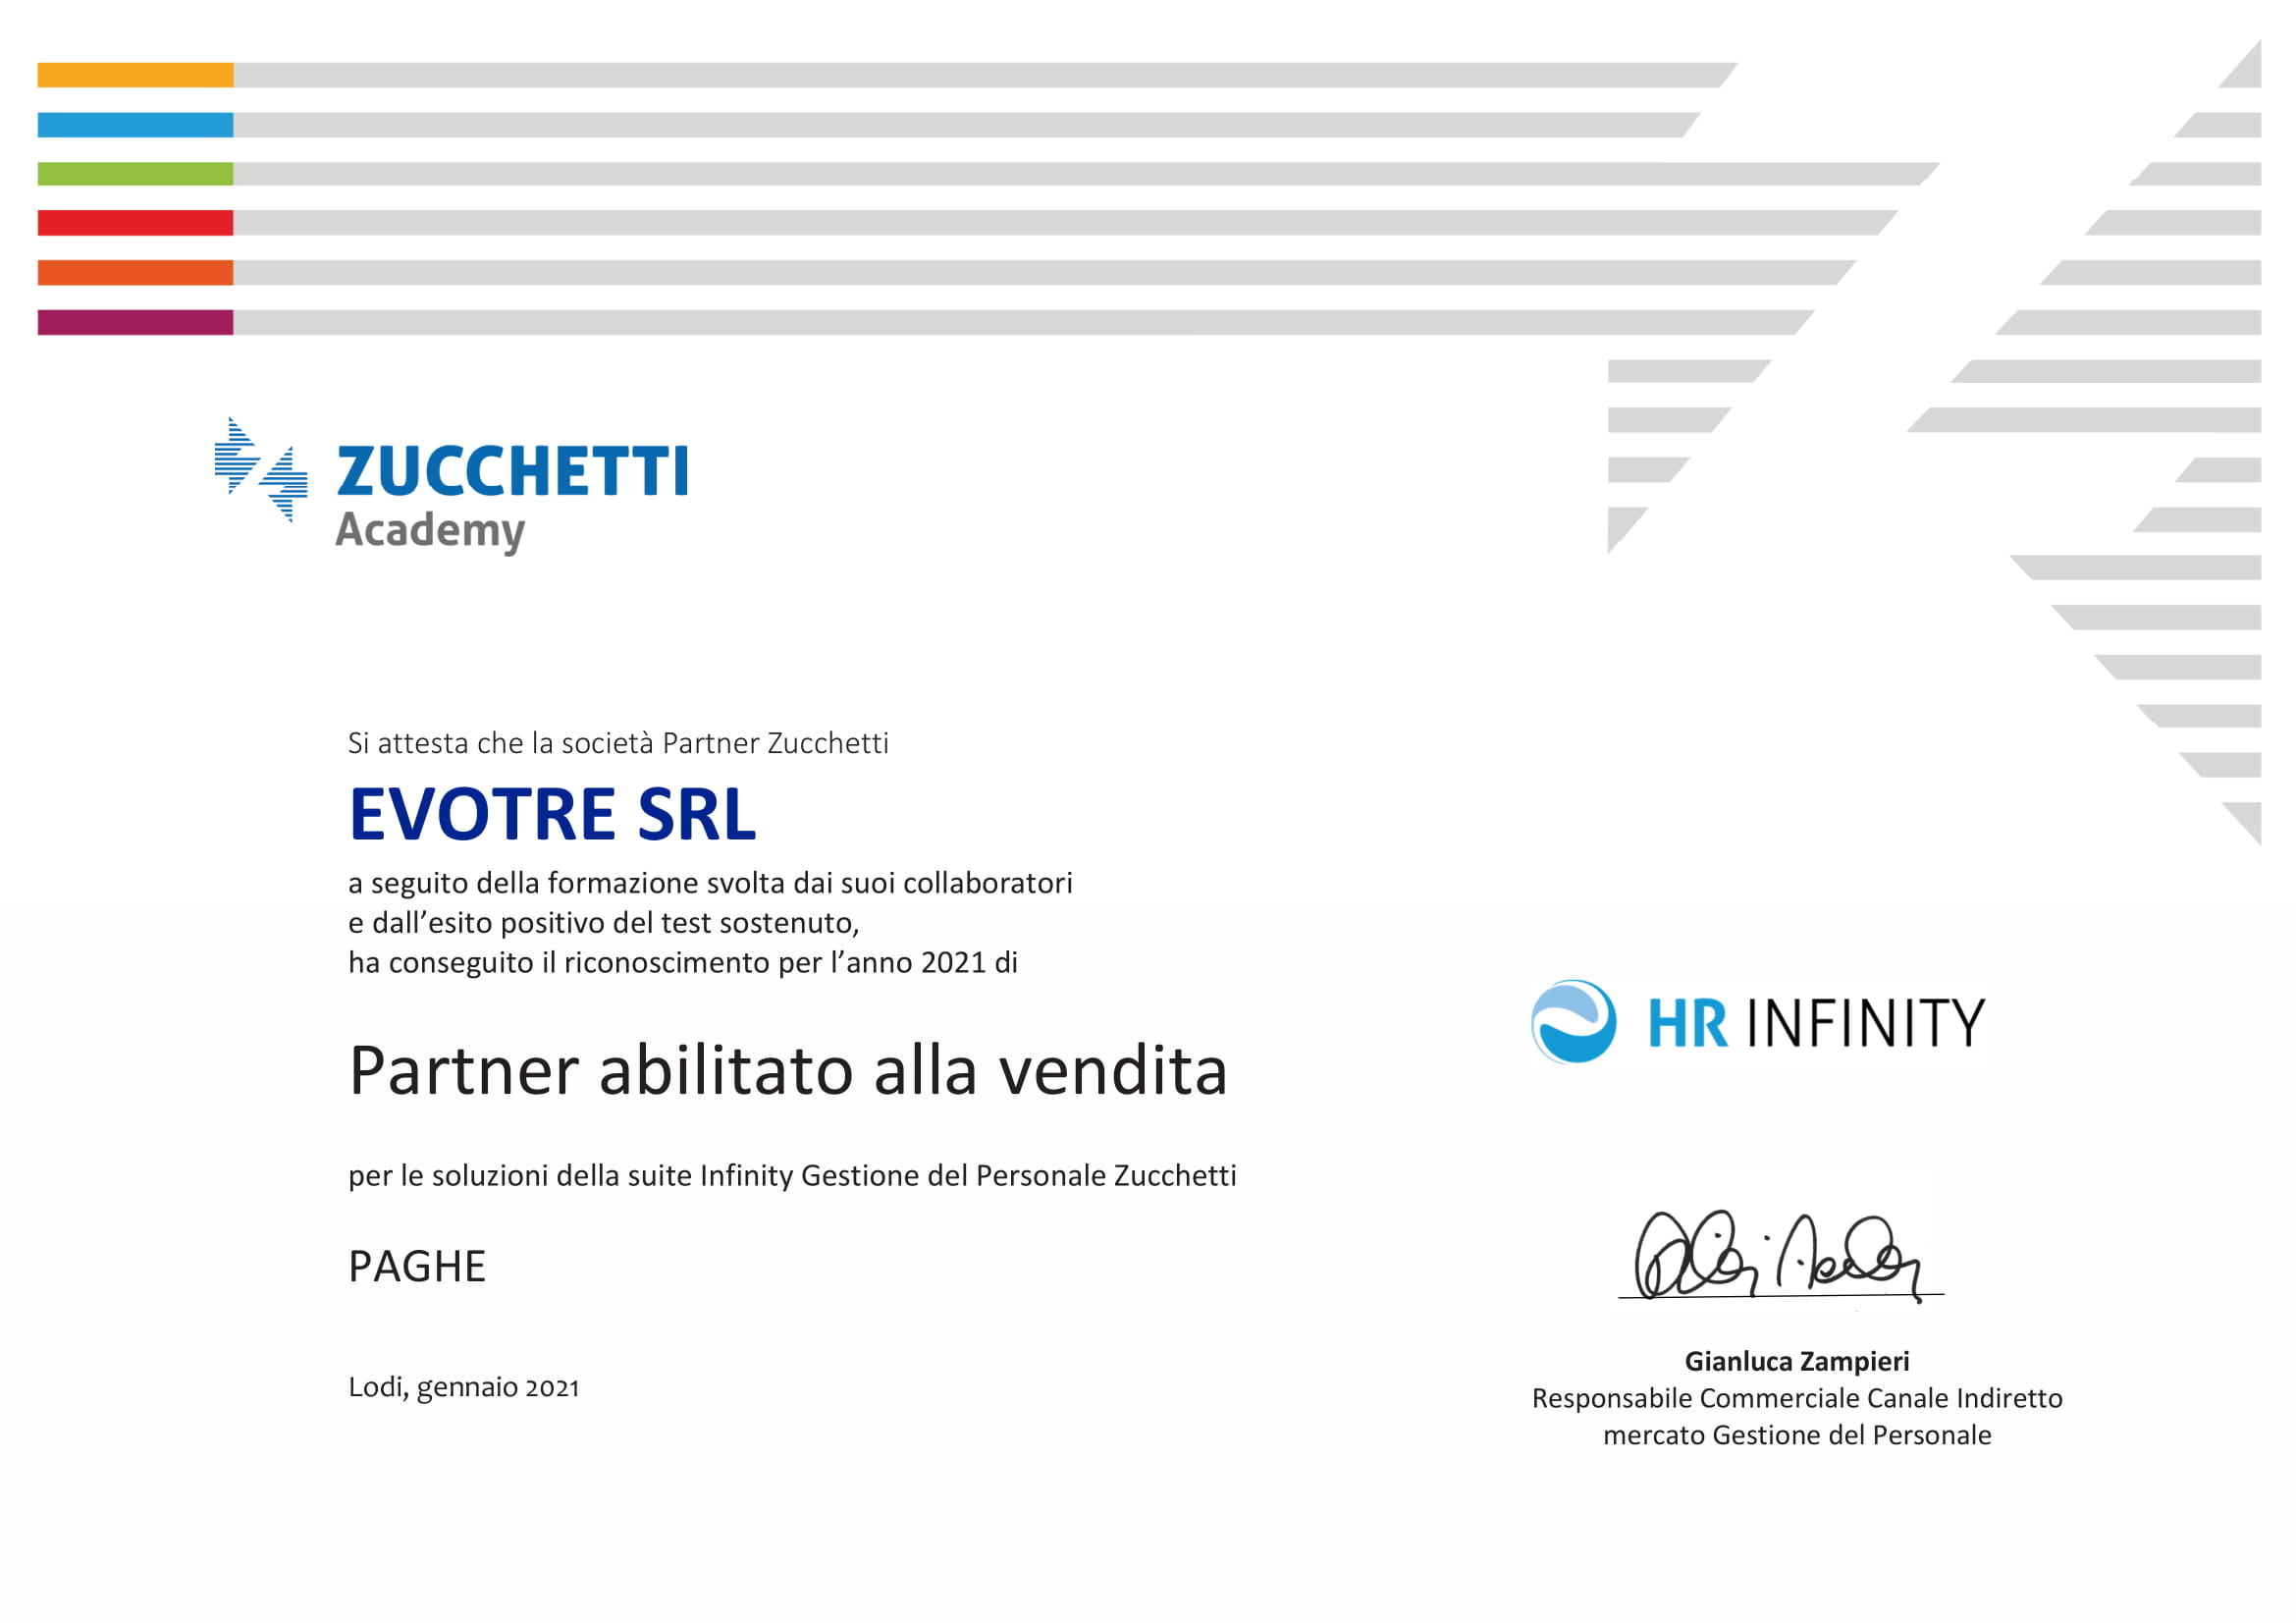 HR Infinity Paghe